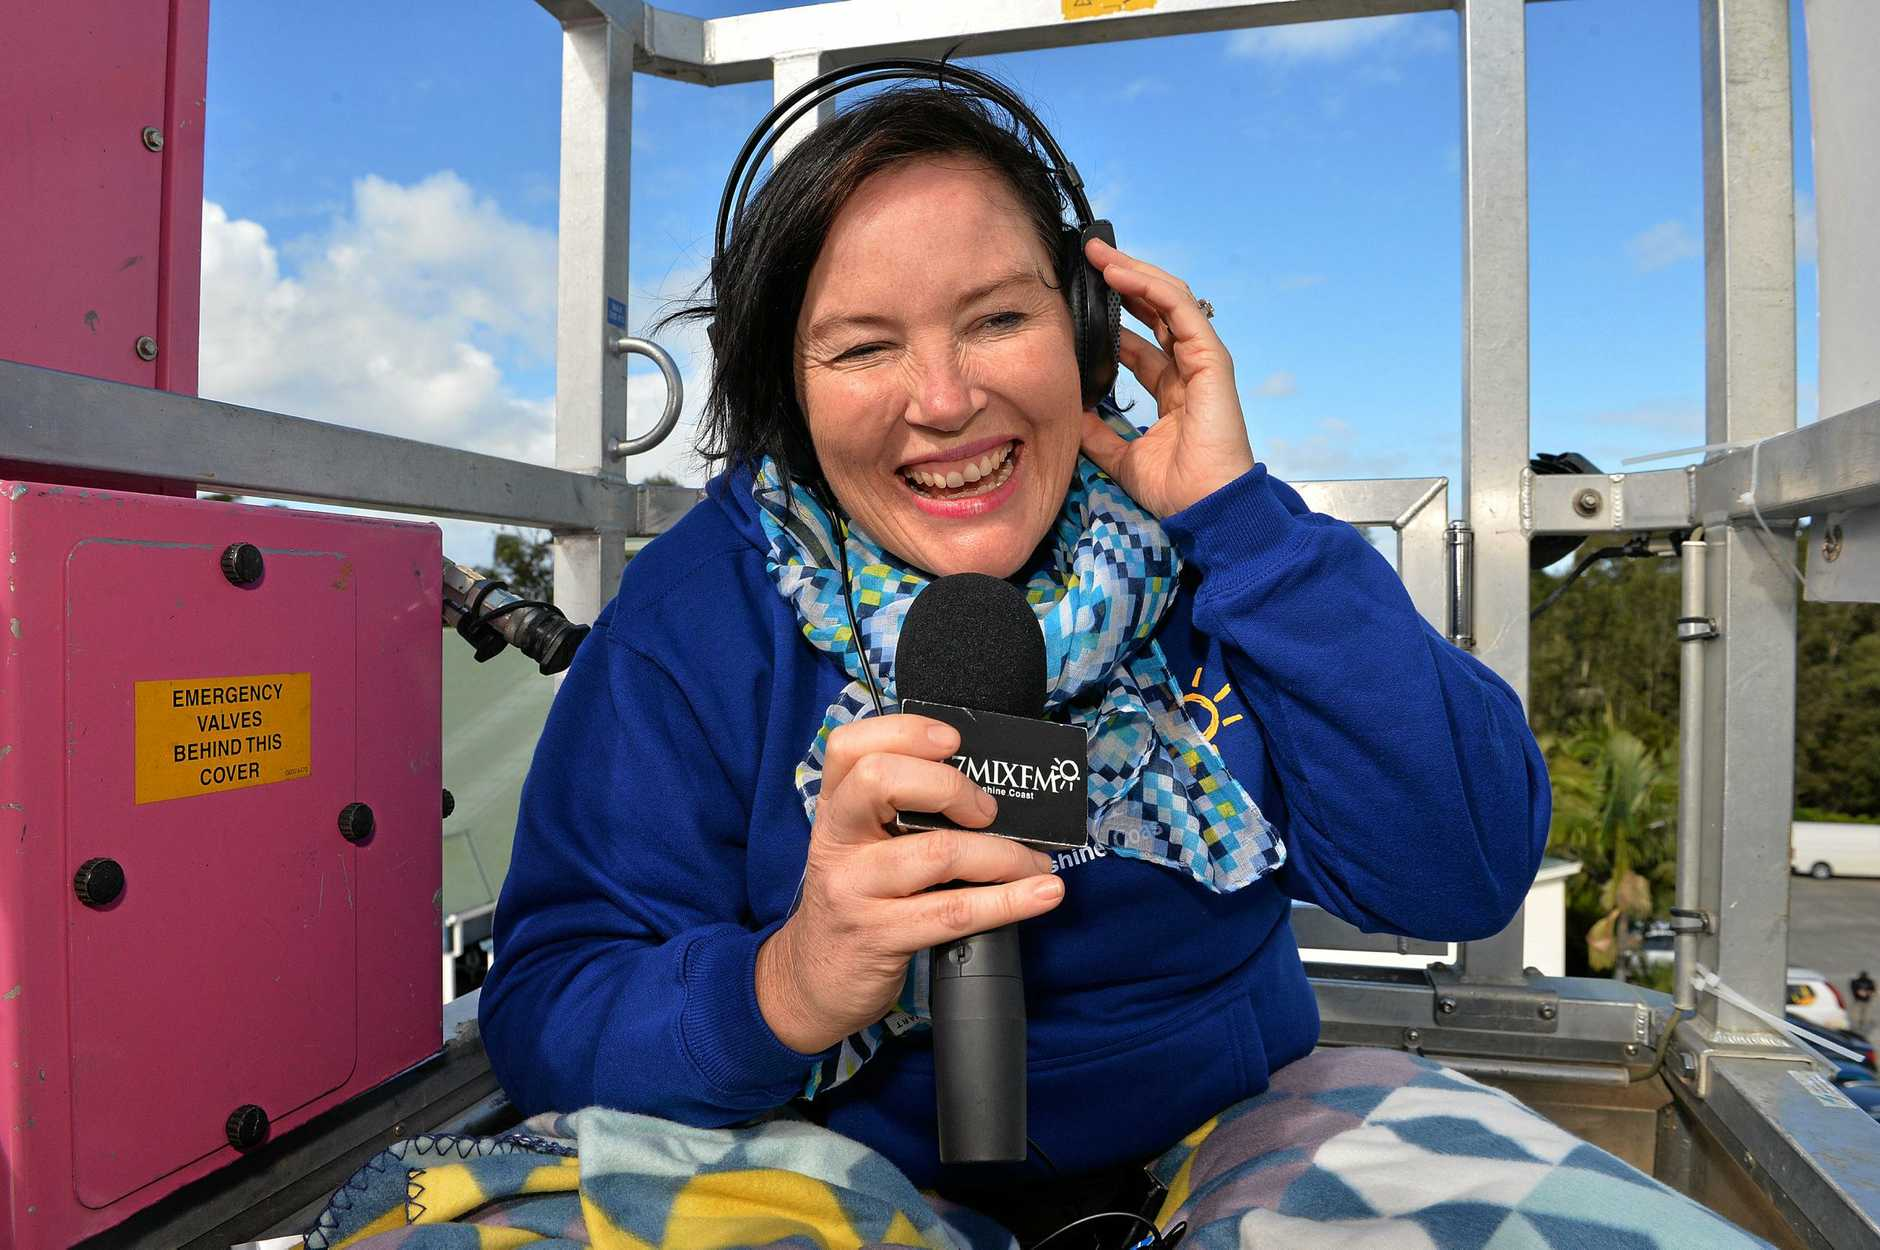 Caroline Hutchinson from MIX FM is raising money for charity by broadcasting from the top of a crane. Photo: Warren Lynam / Sunshine Coast Daily